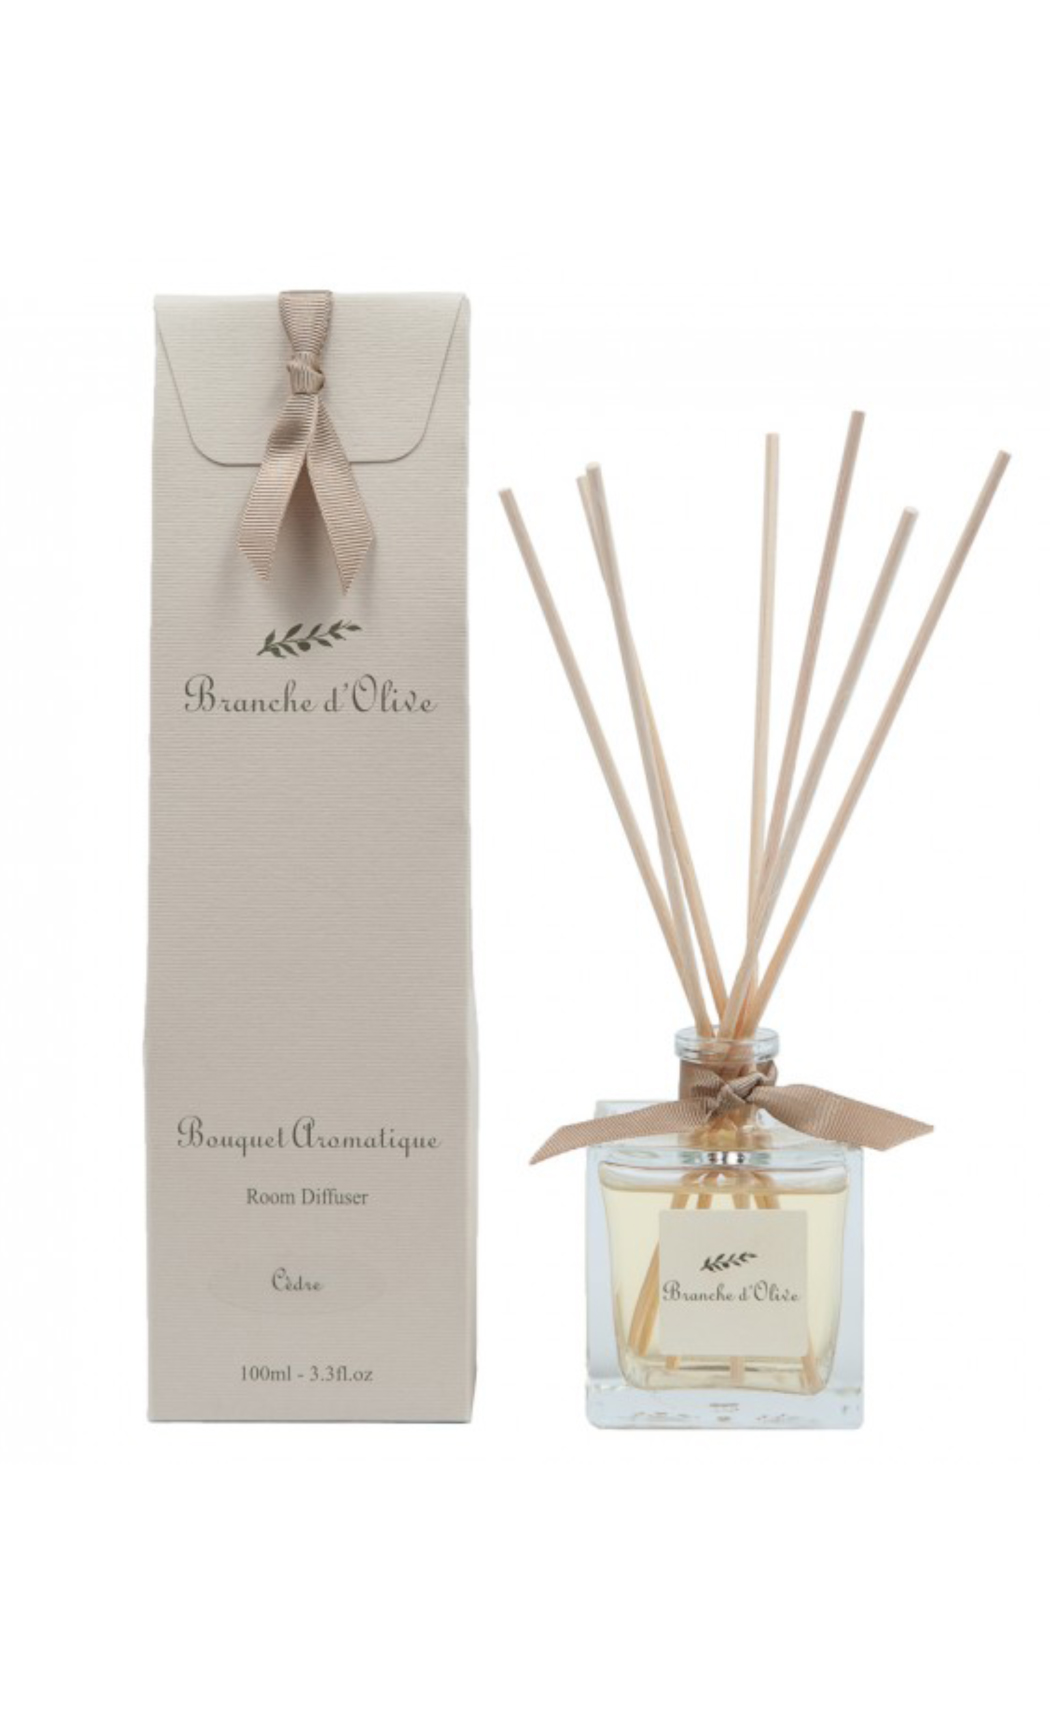 Diffuser Reed Sticks - Woody Aroma of Sandalwood